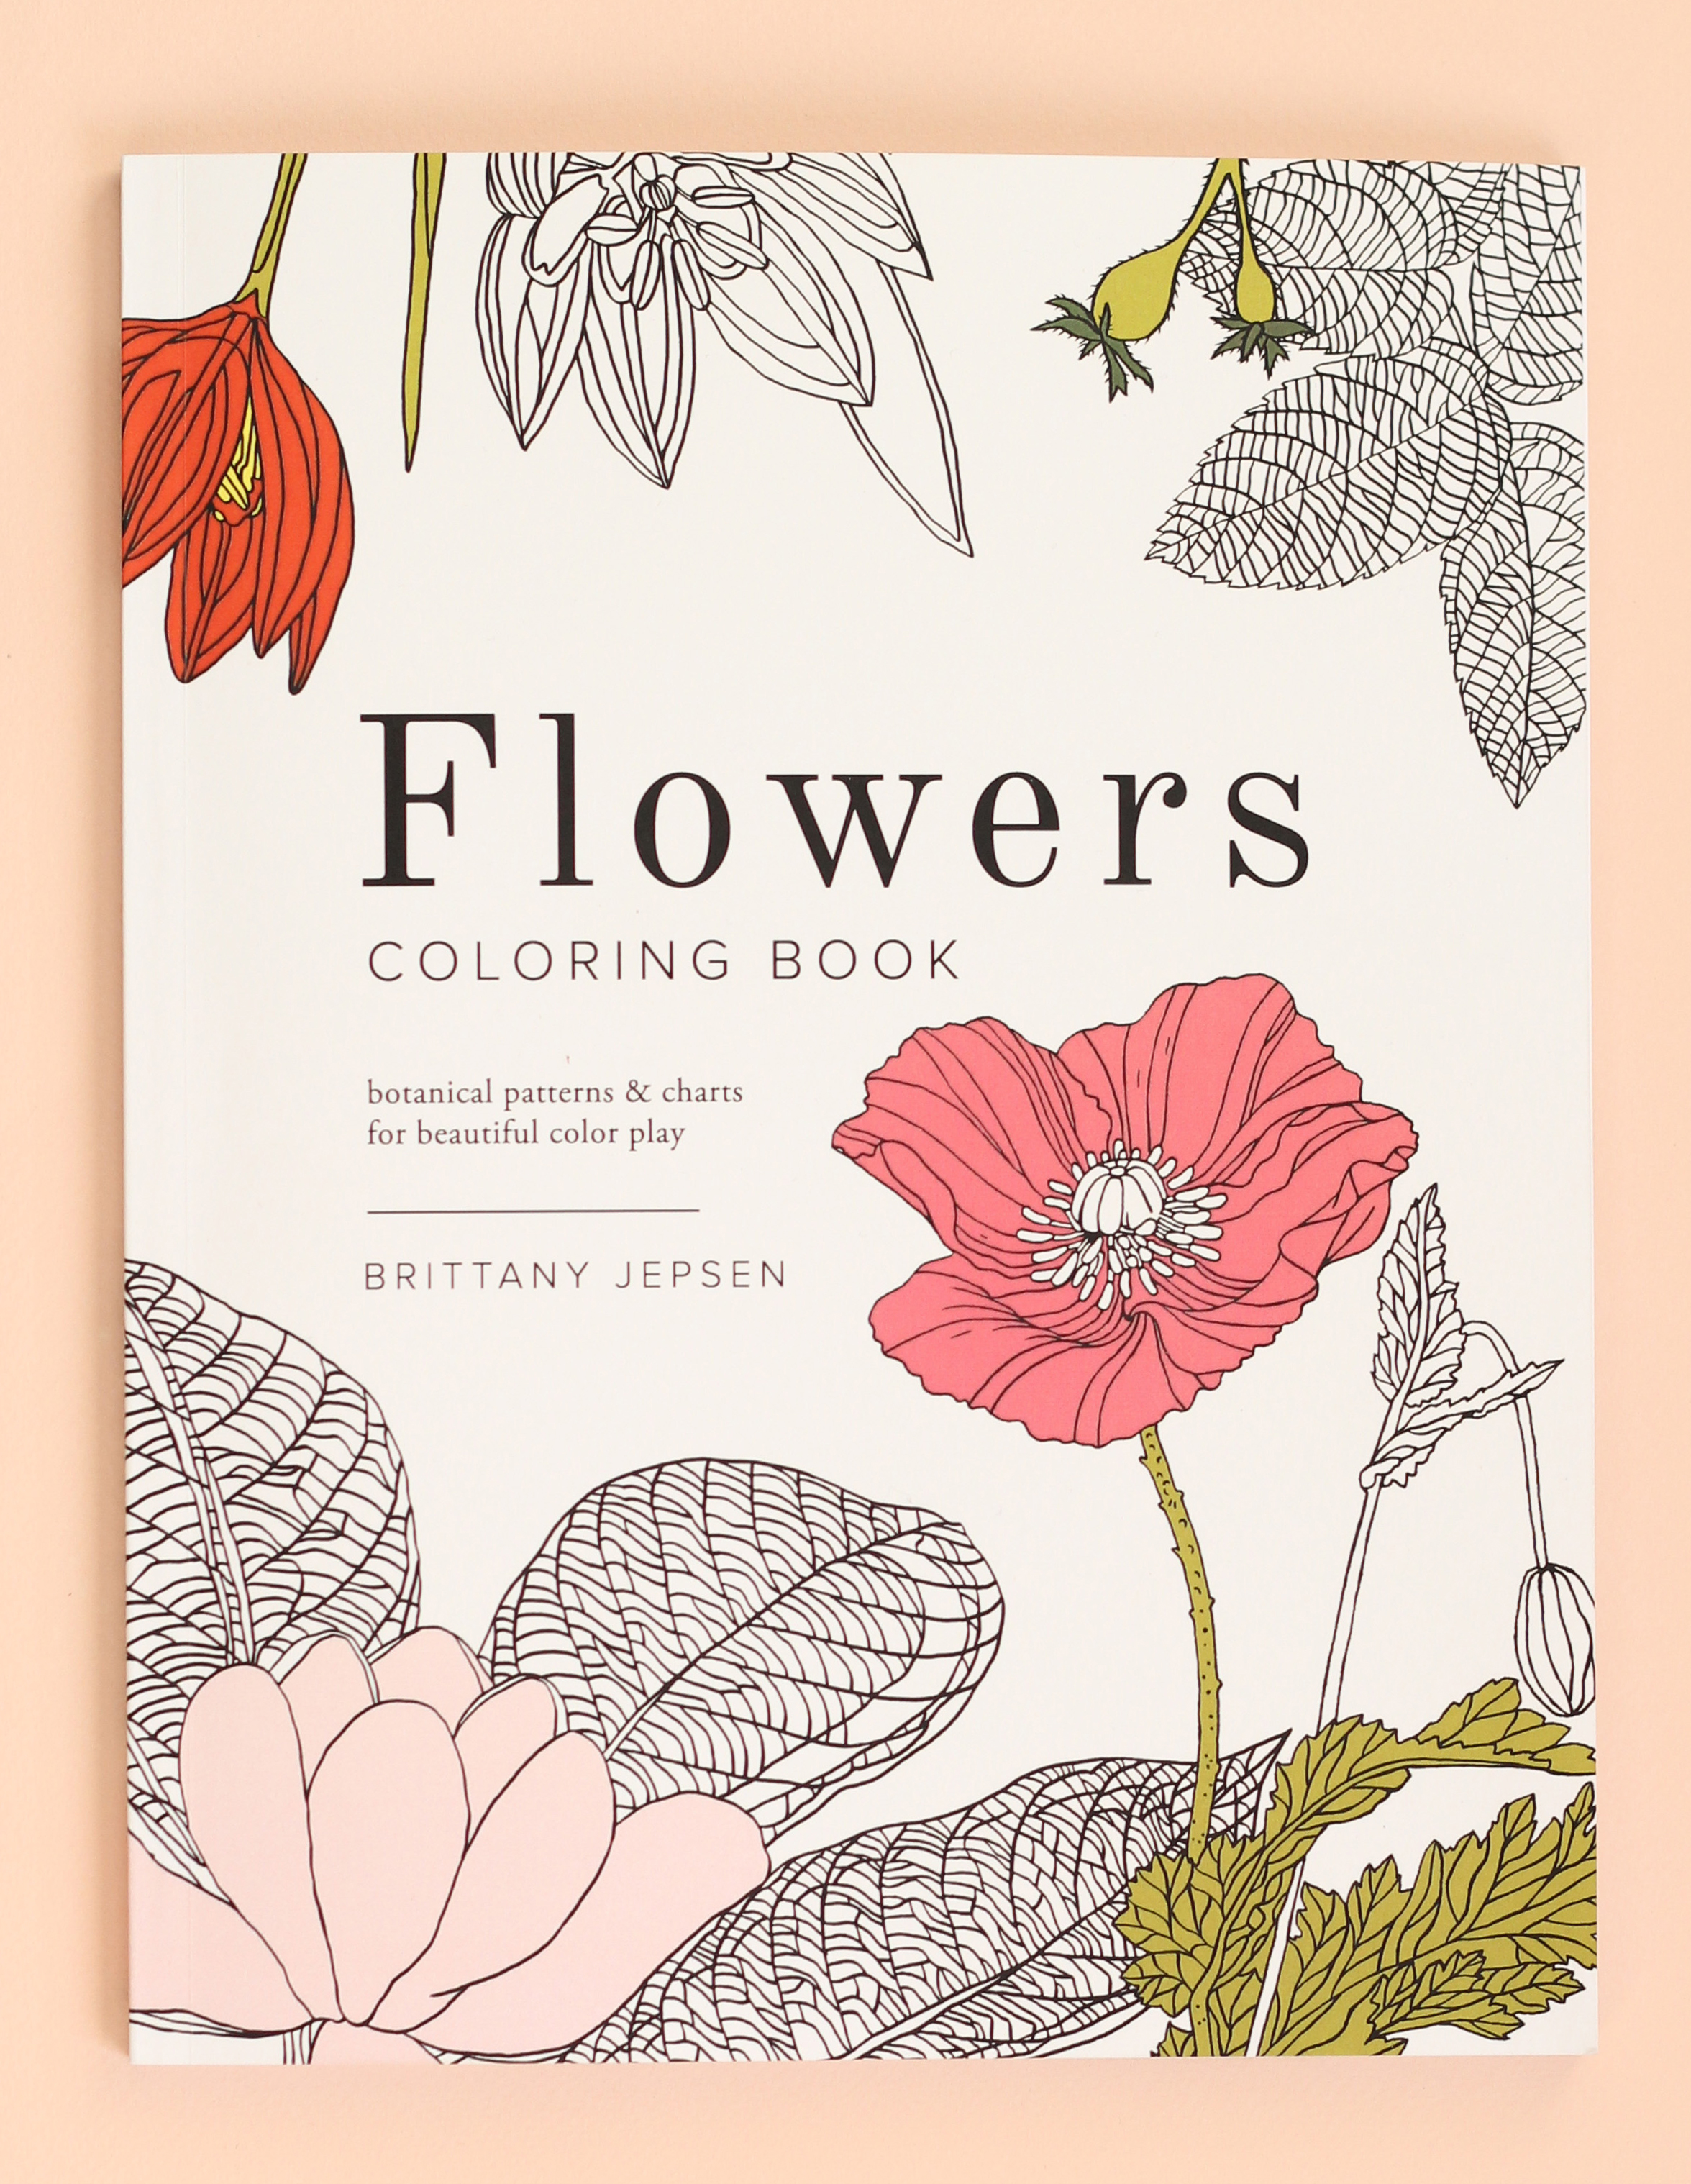 Flowers Coloring Book - The House That Lars Built